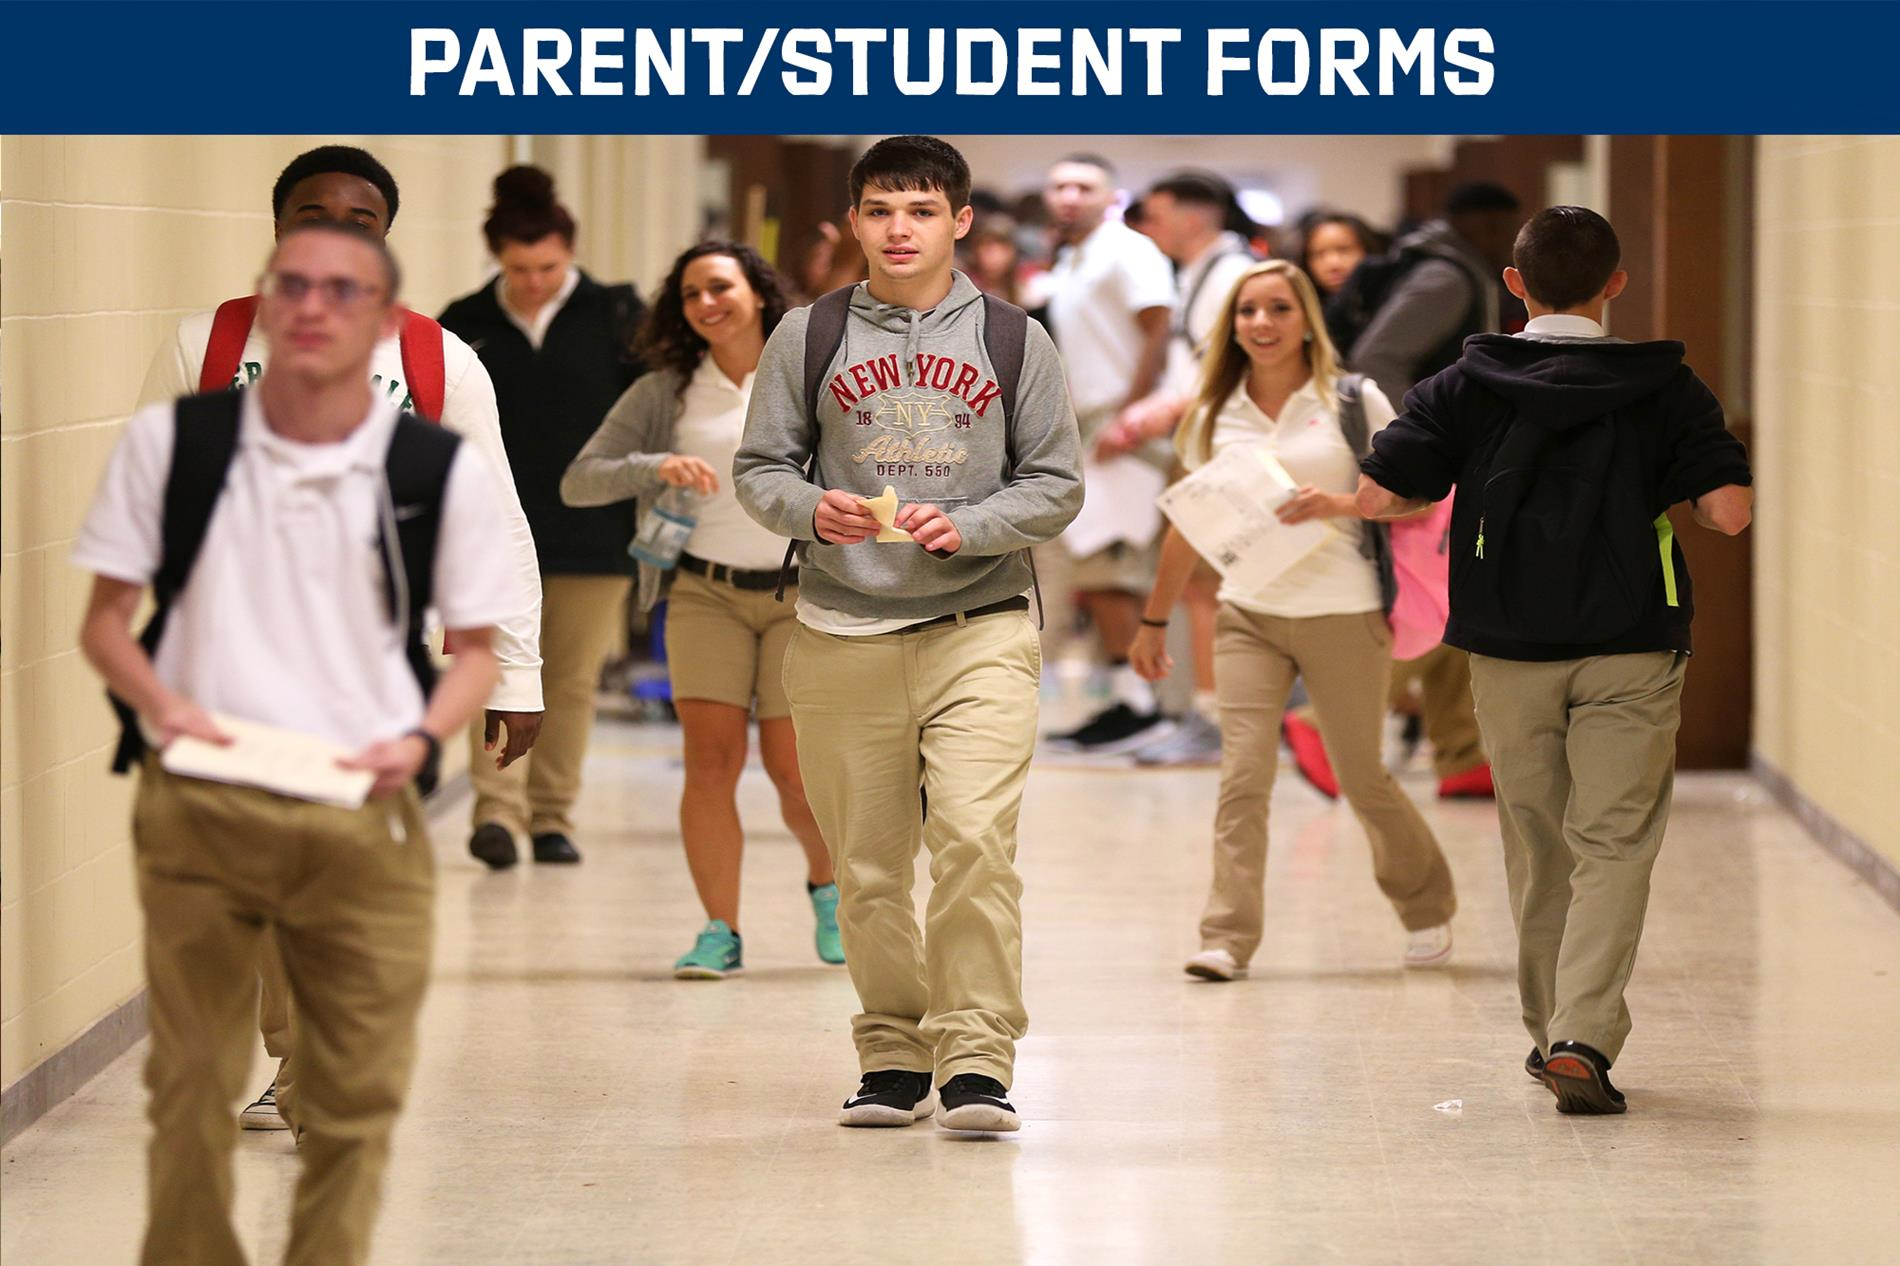 parent/student forms